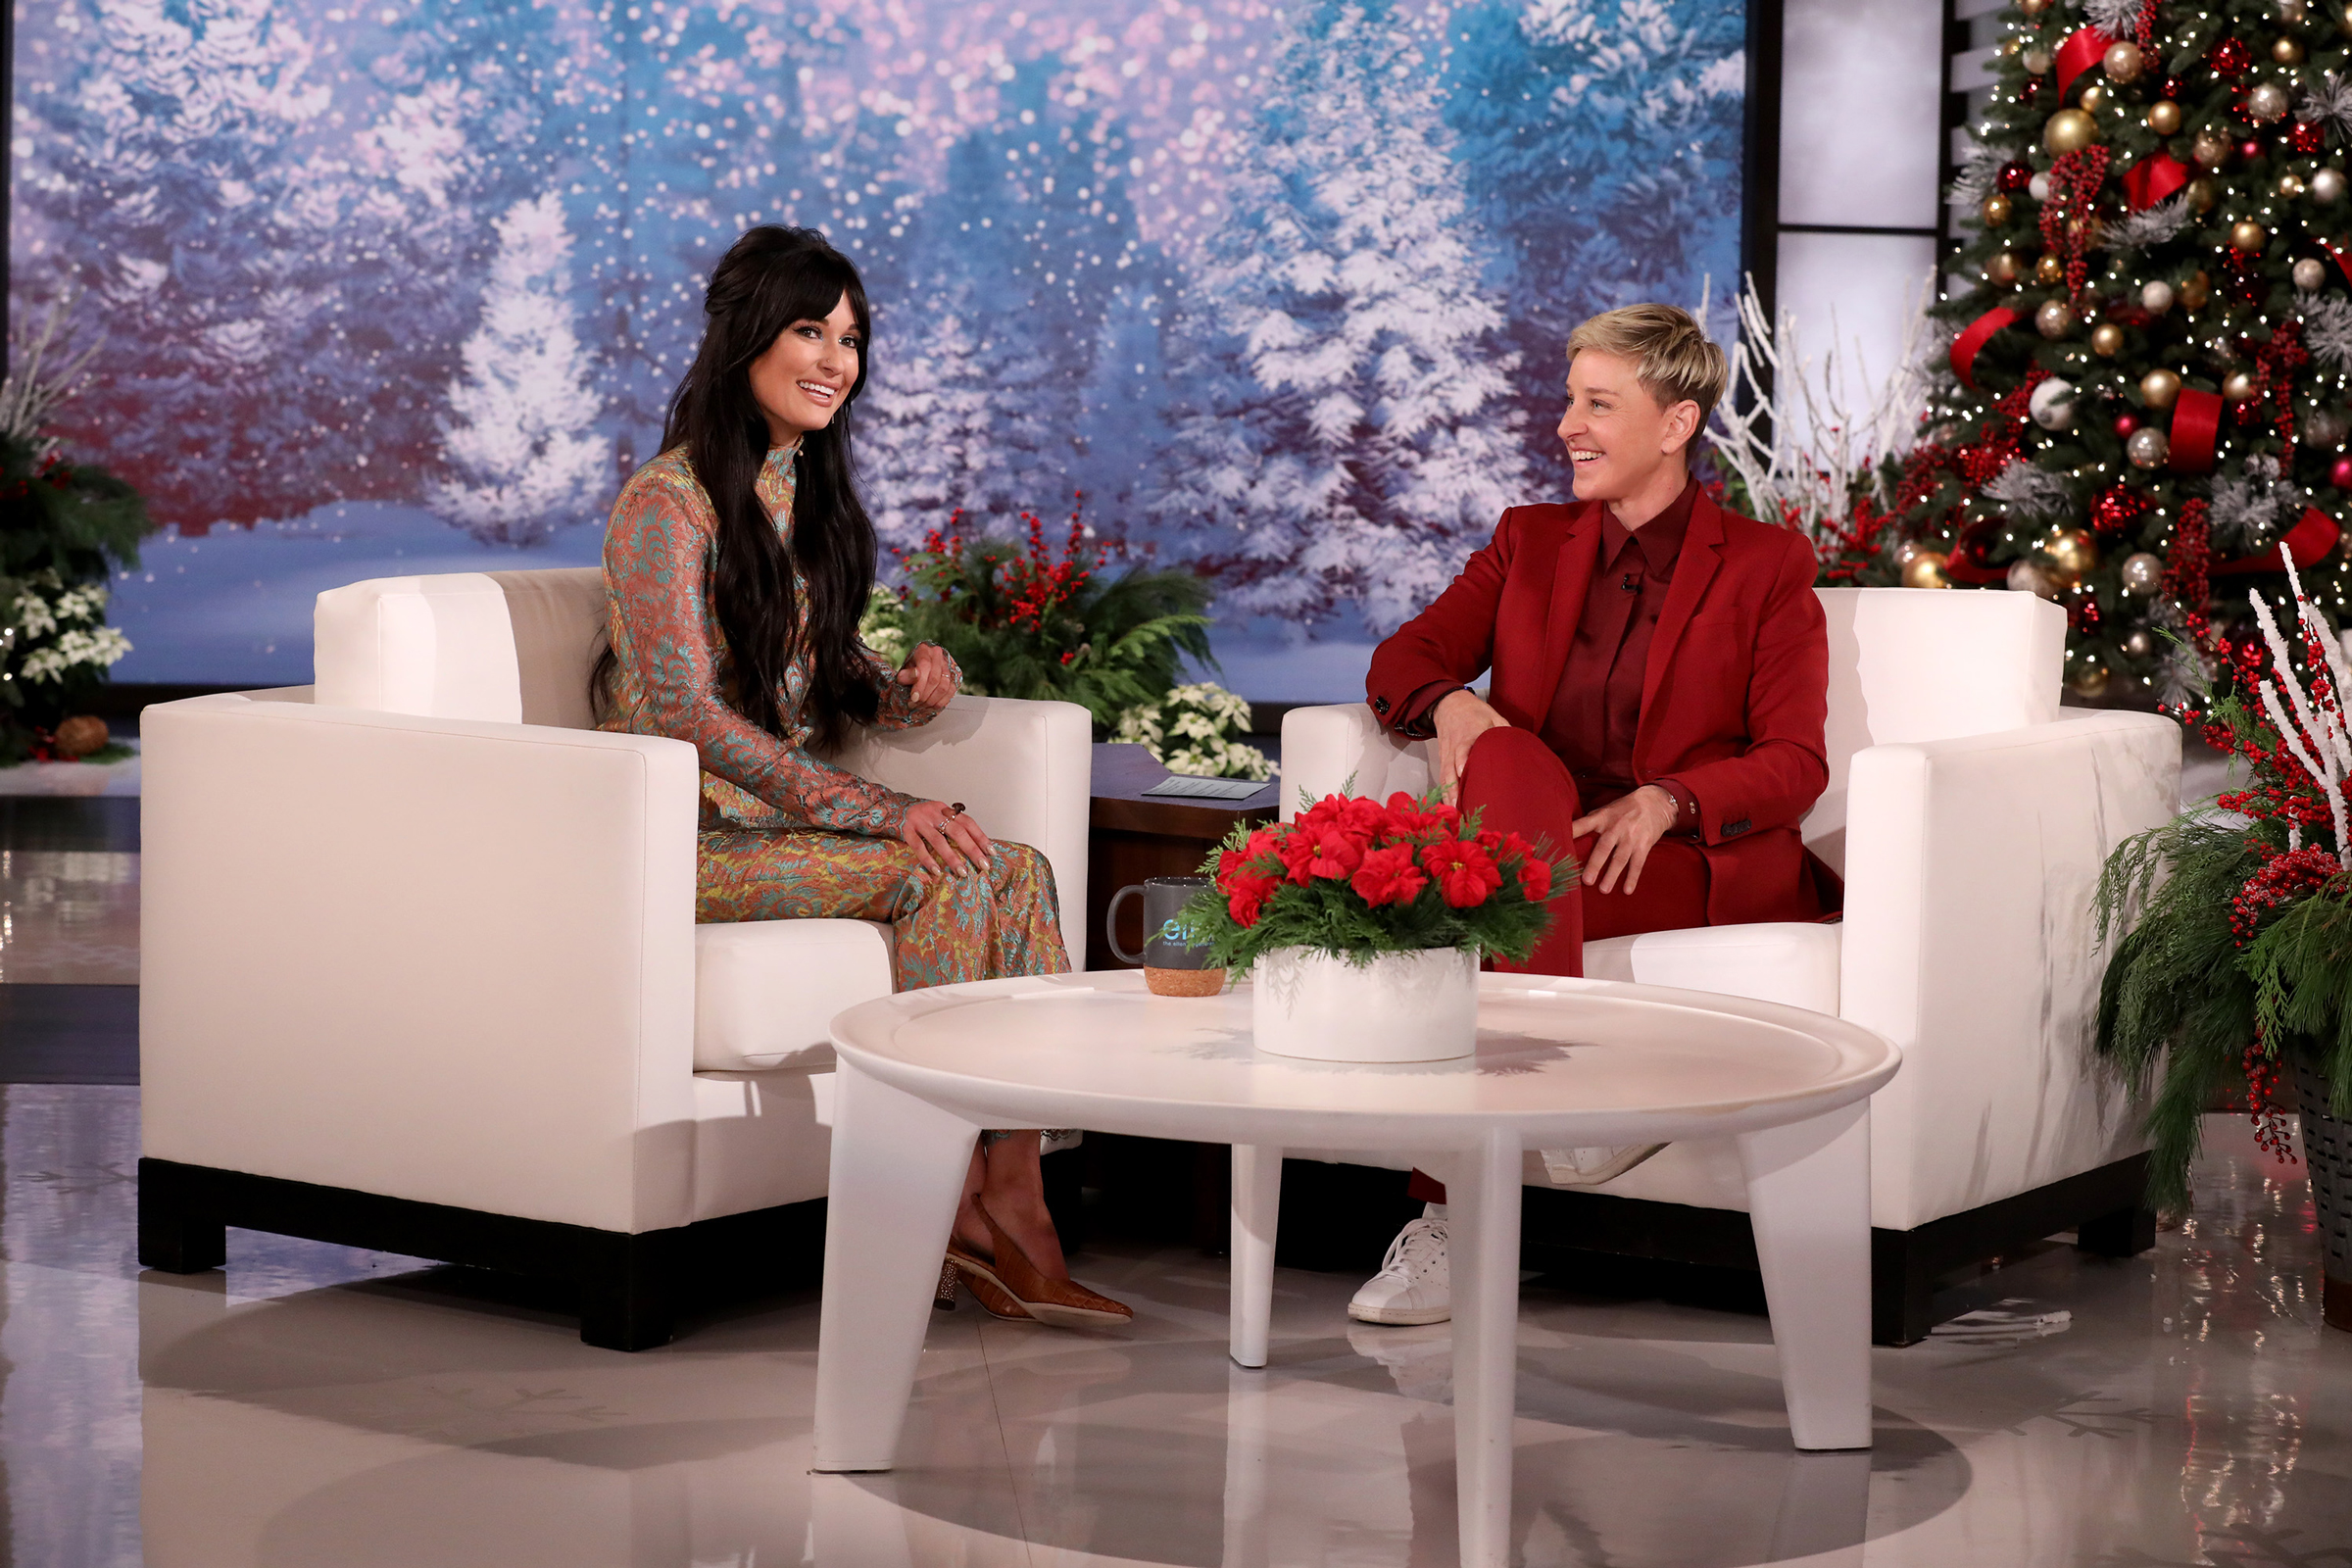 Kacey Musgraves Talks Helping Out a Photo Business on 'Ellen'